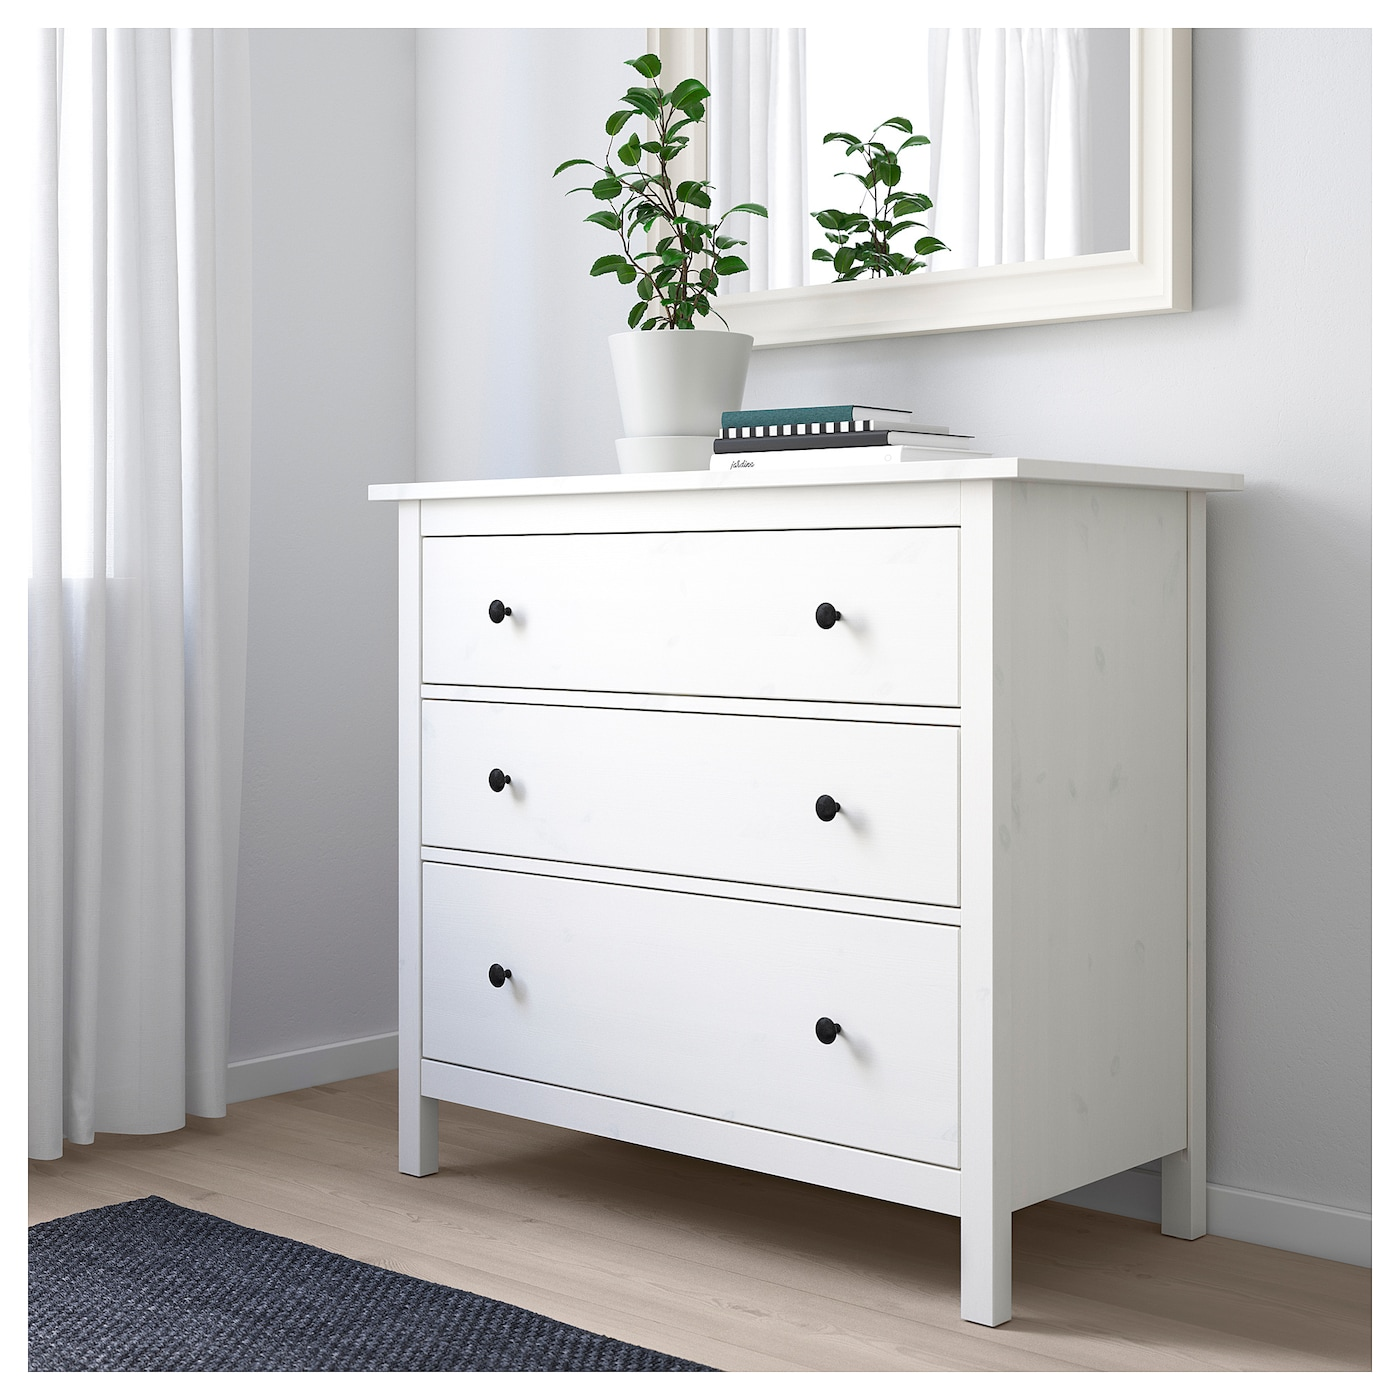 white dresser ikea hemnes chest of 3 drawers white stain 108 x 96 cm ikea 13840